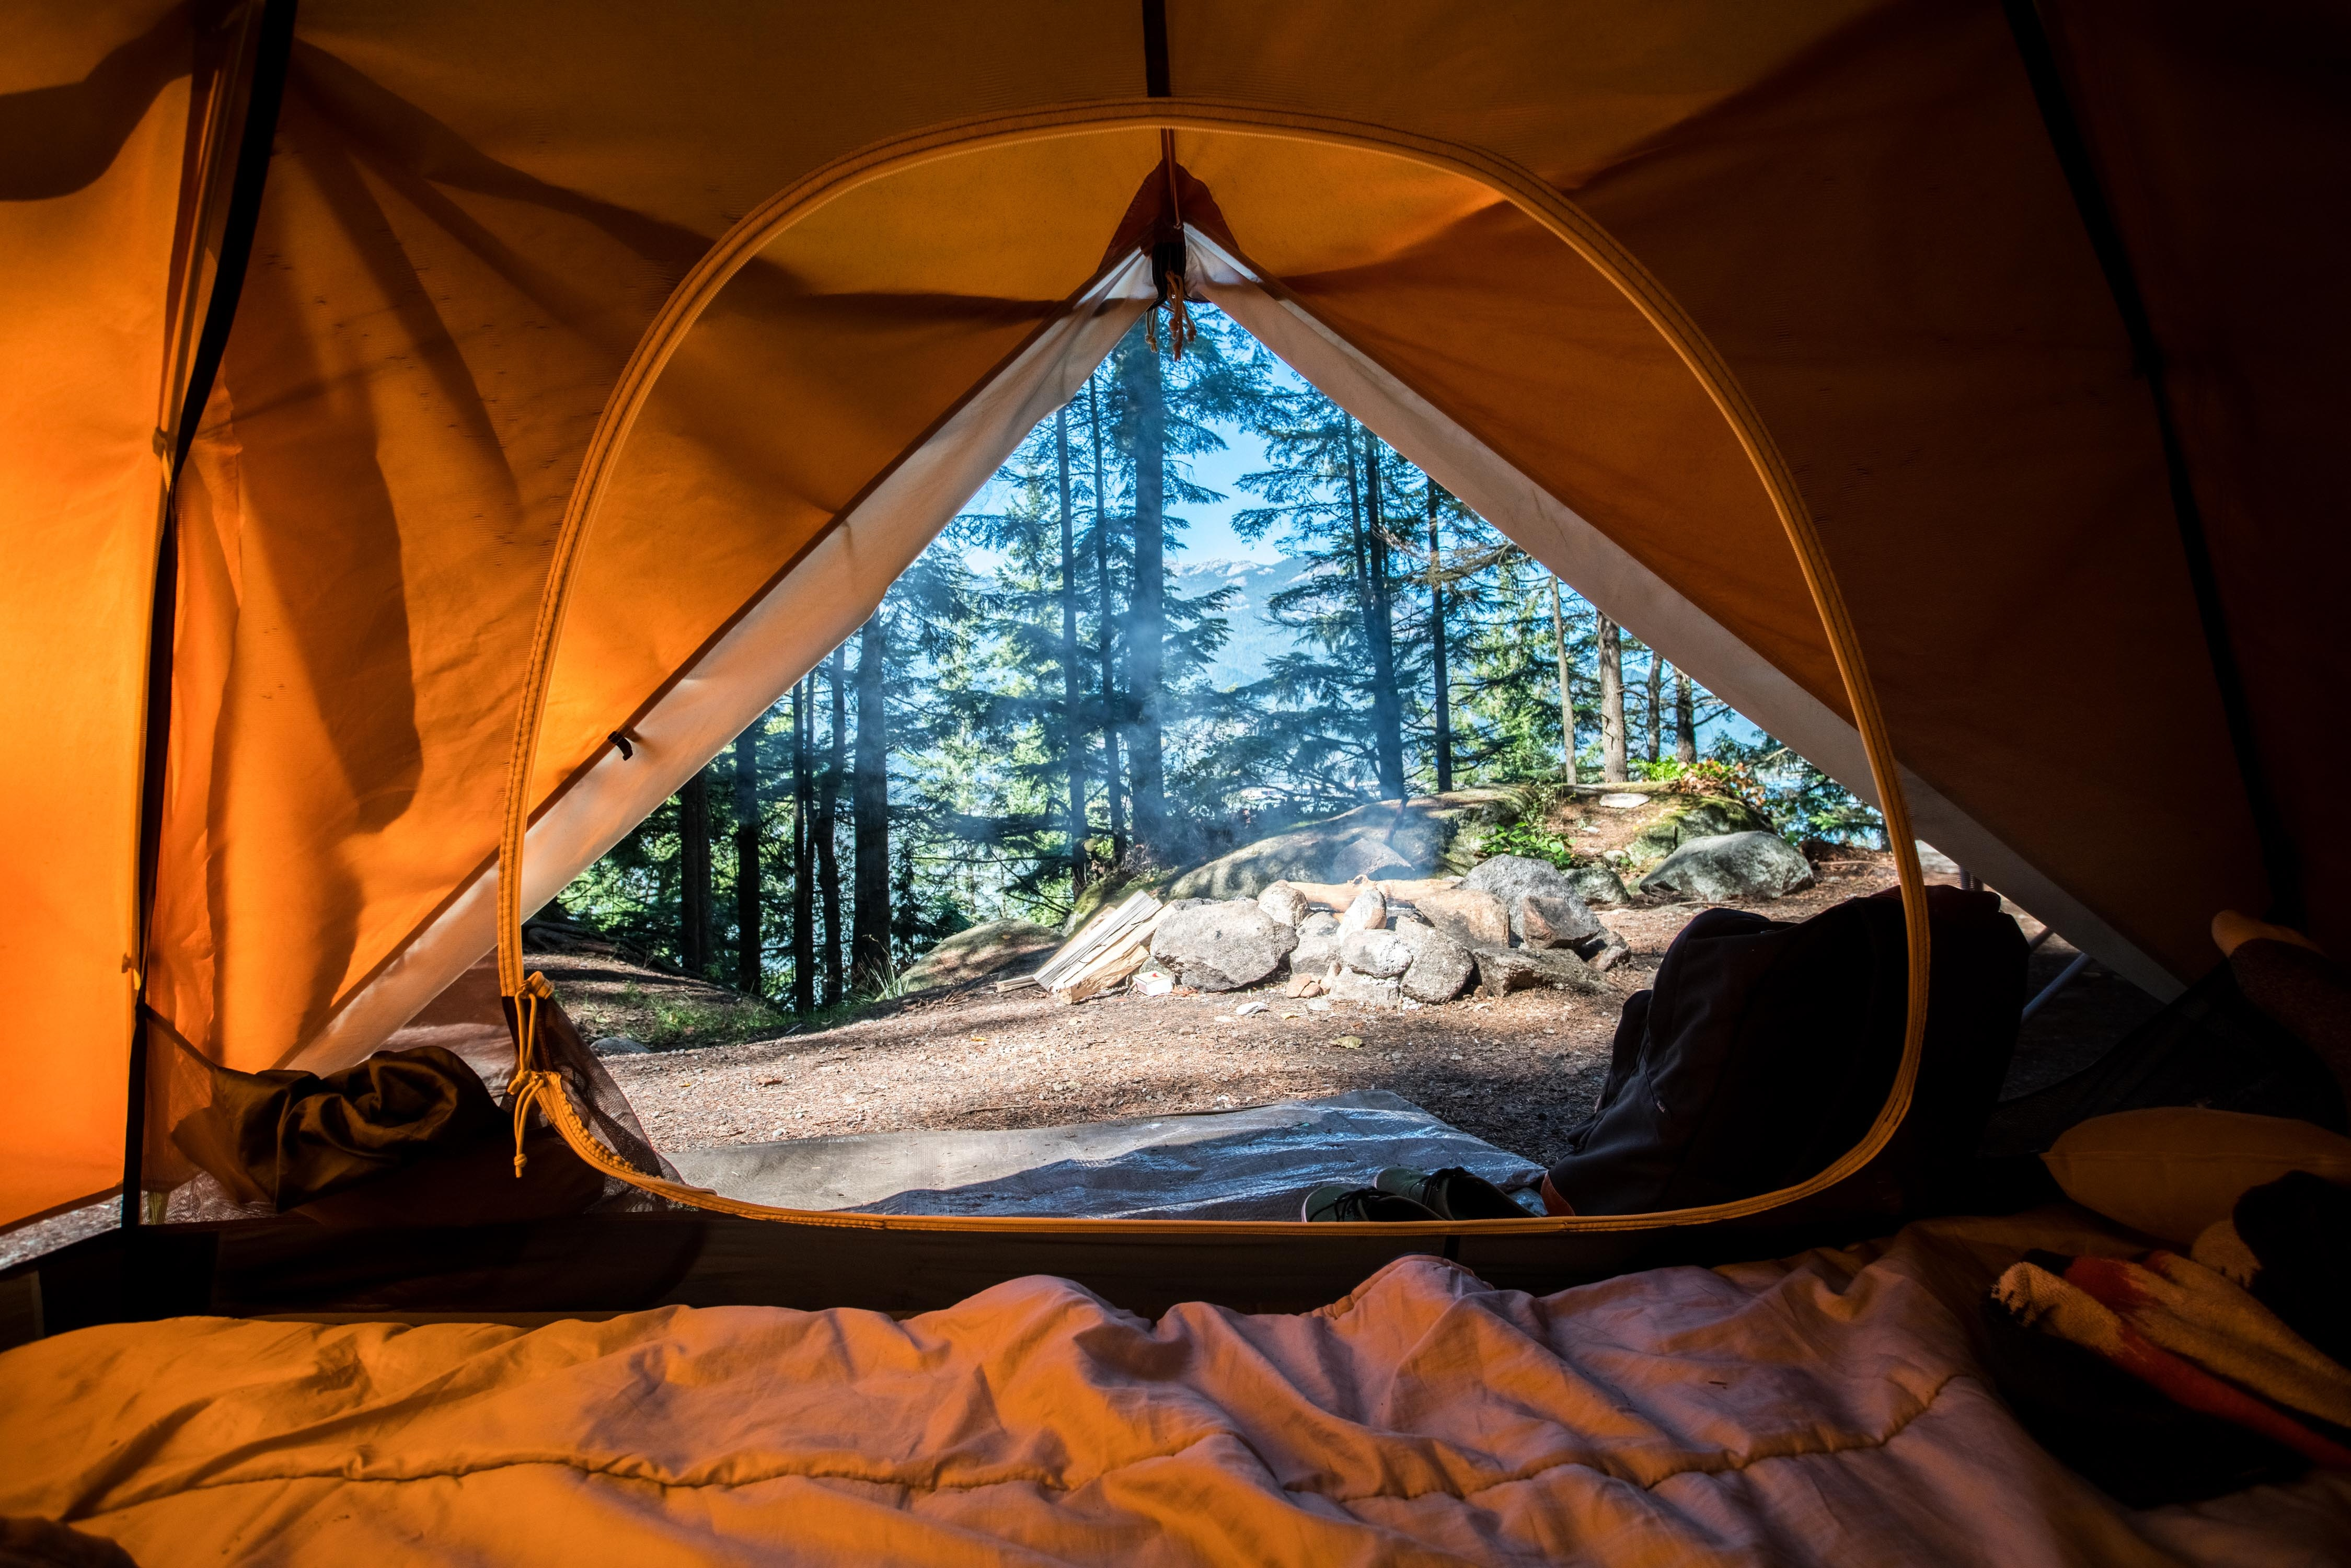 67817 download wallpaper Nature, Miscellanea, Miscellaneous, Journey, Tent, Camping, Campsite, Tourism screensavers and pictures for free